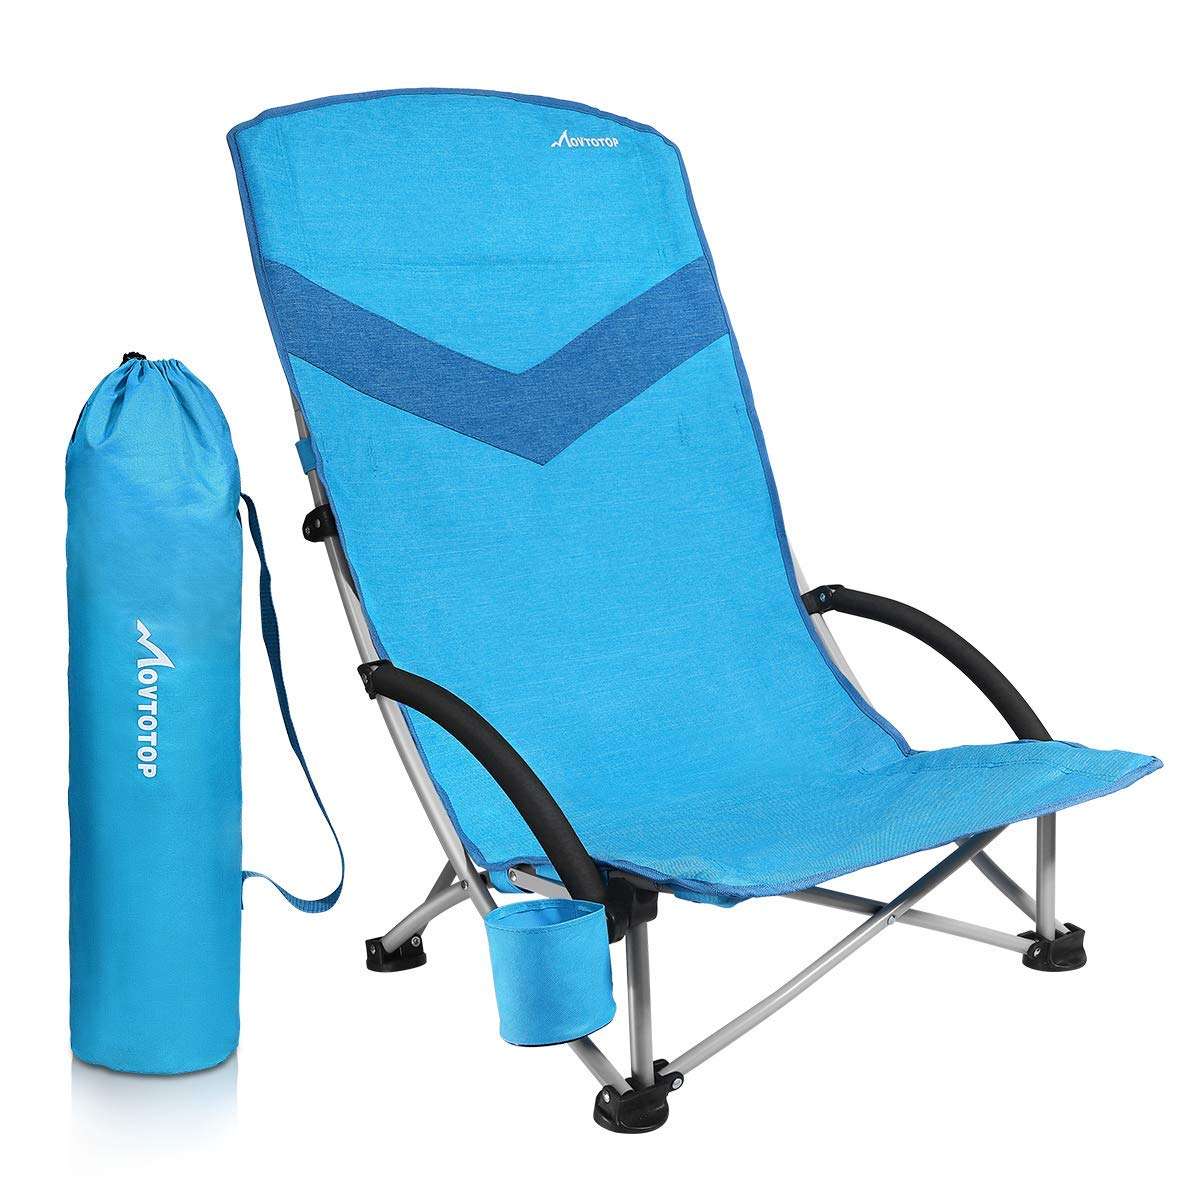 Asteri Low Beach Chair Camping Chair Foldable with Carry Bag 600D Oxford Fabric Breathable Mesh Back Blue//Black